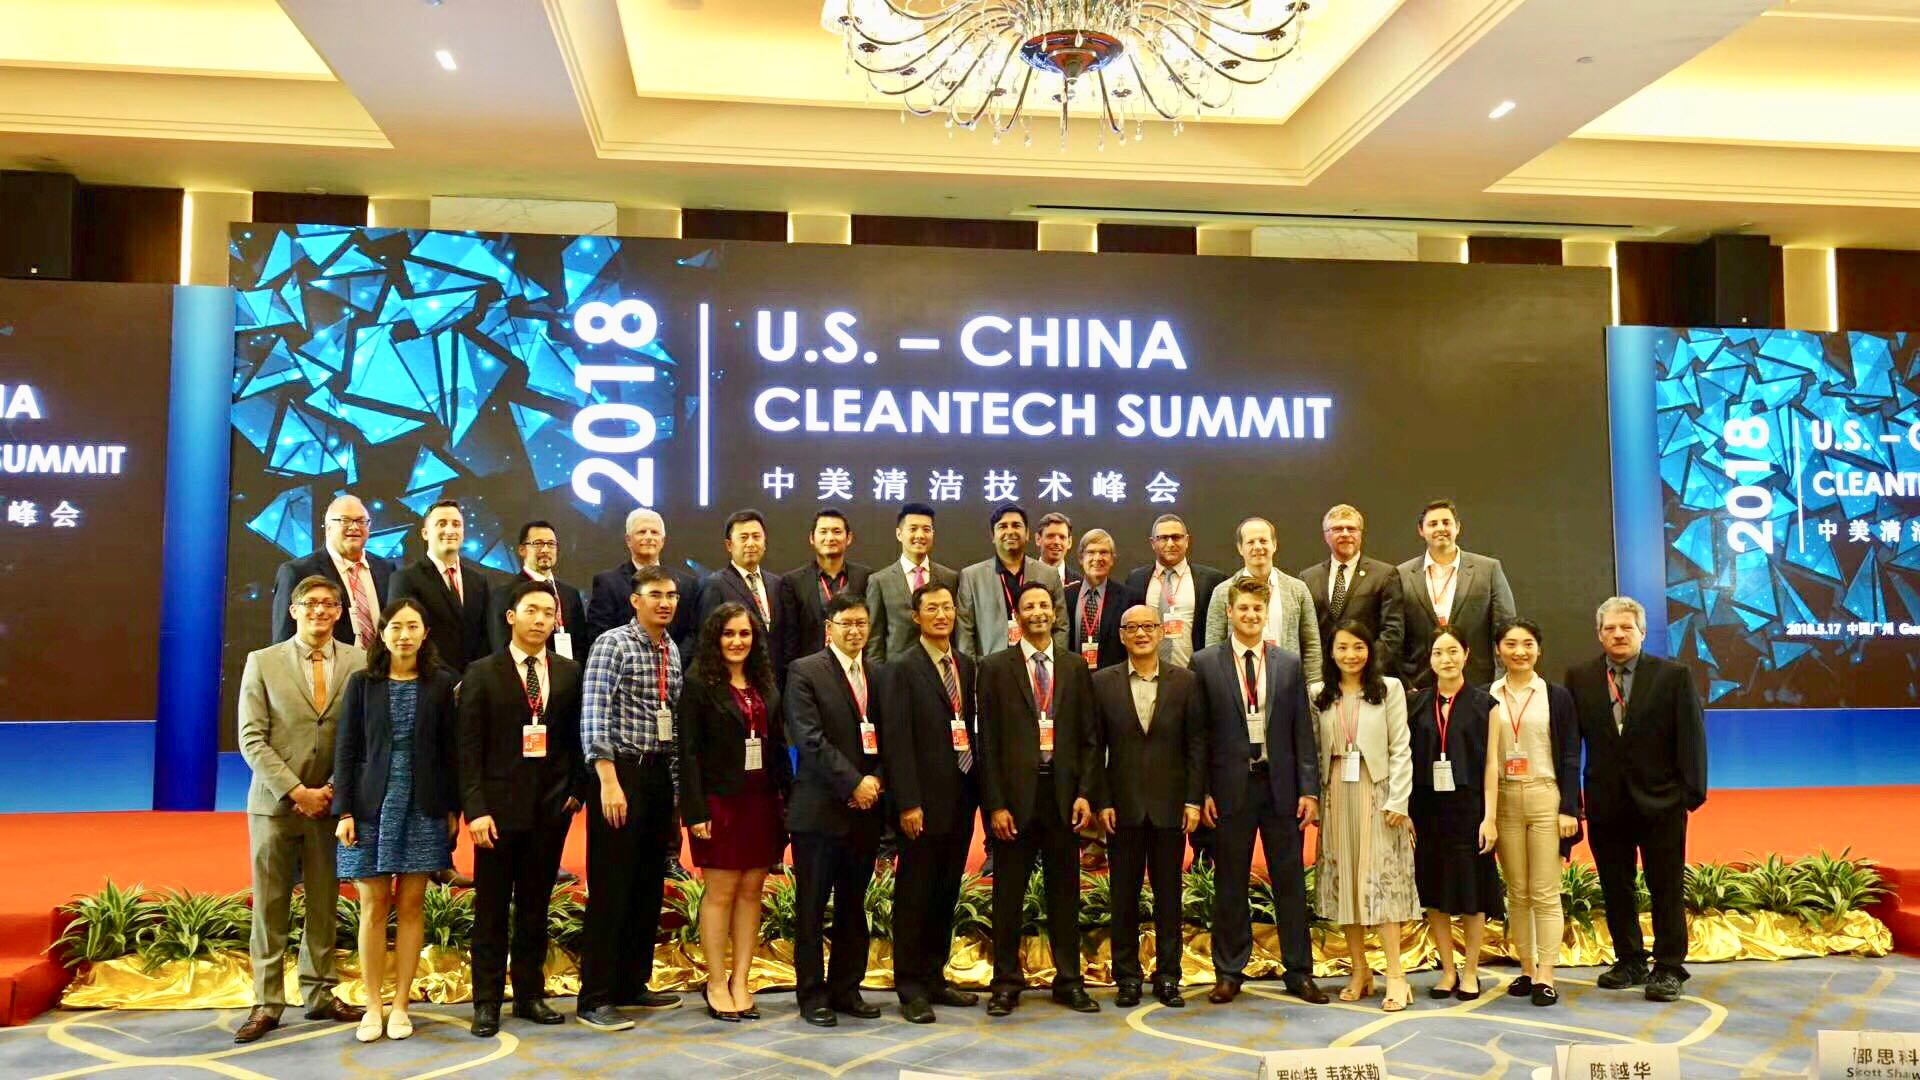 2018 US China Cleantech Summit is held in Guangzhou